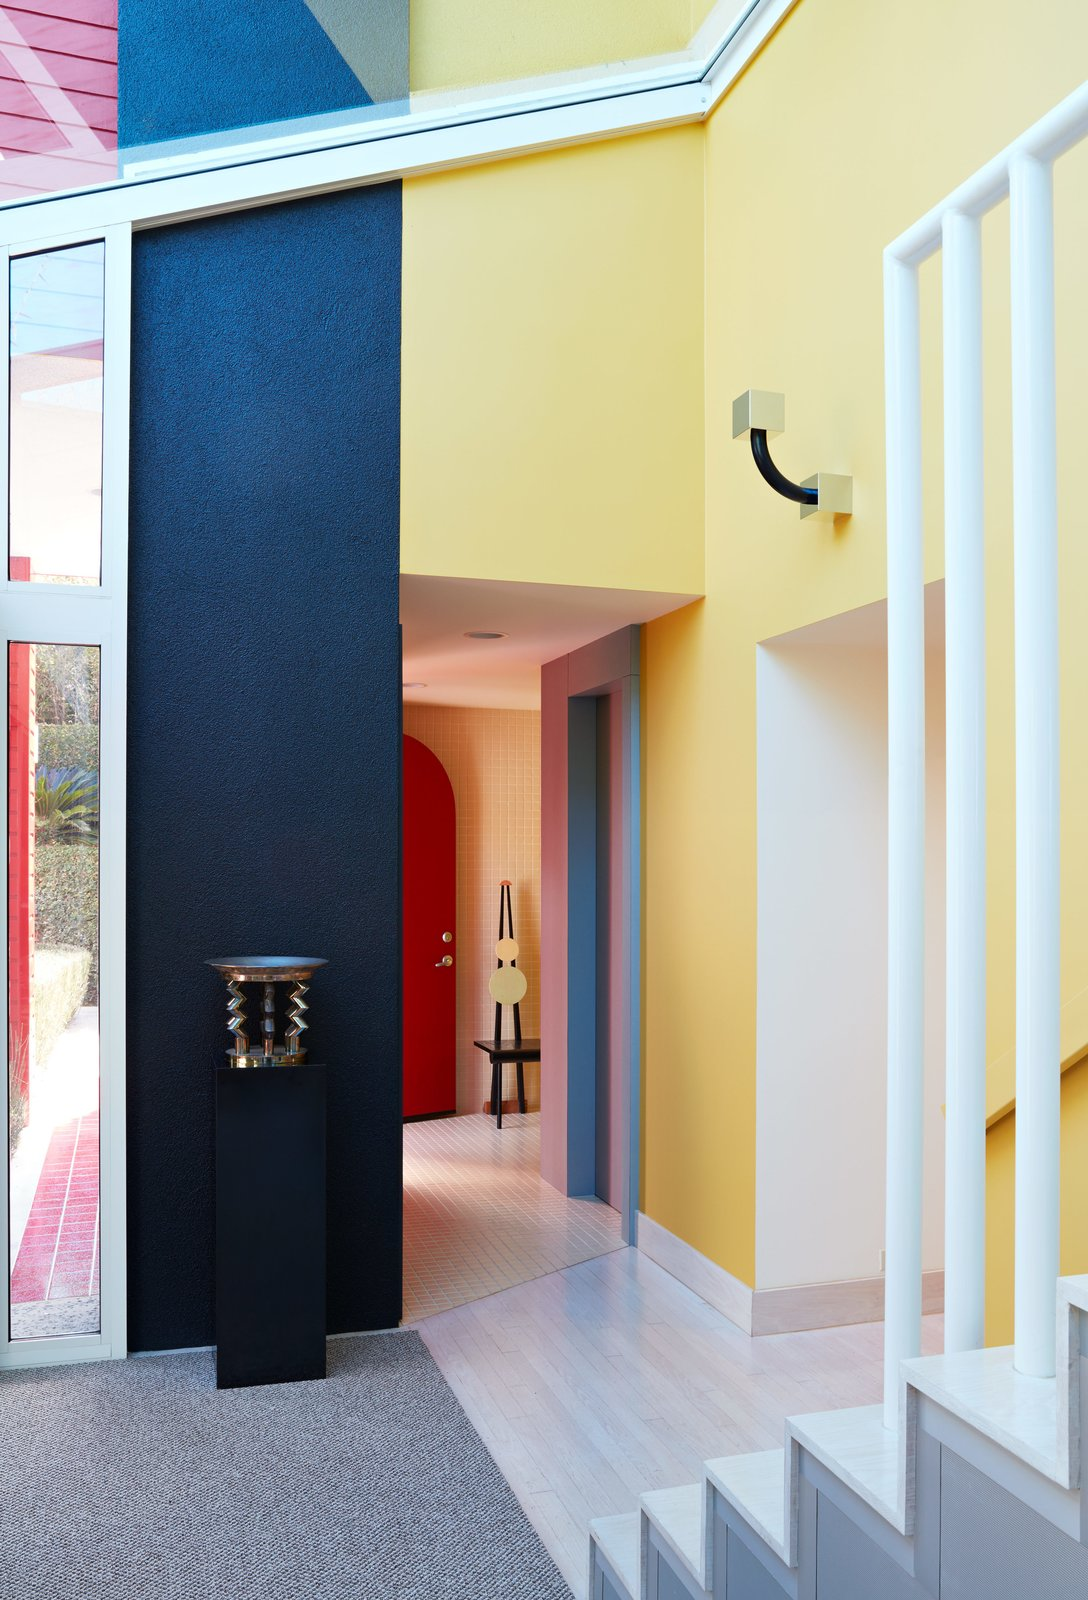 Vignettes of contrasting colors, materials, and shapes frame every corner. A one-of-a-kind chair by Peter Shire sits in the hallway; near the sculptural staircase is a sconce for Yamagiwa and a sterling silver centerpiece for Memphis, both by Sottsass.  Photo 12 of 14 in Thank Sottsass for the Most Memphis House Imaginable